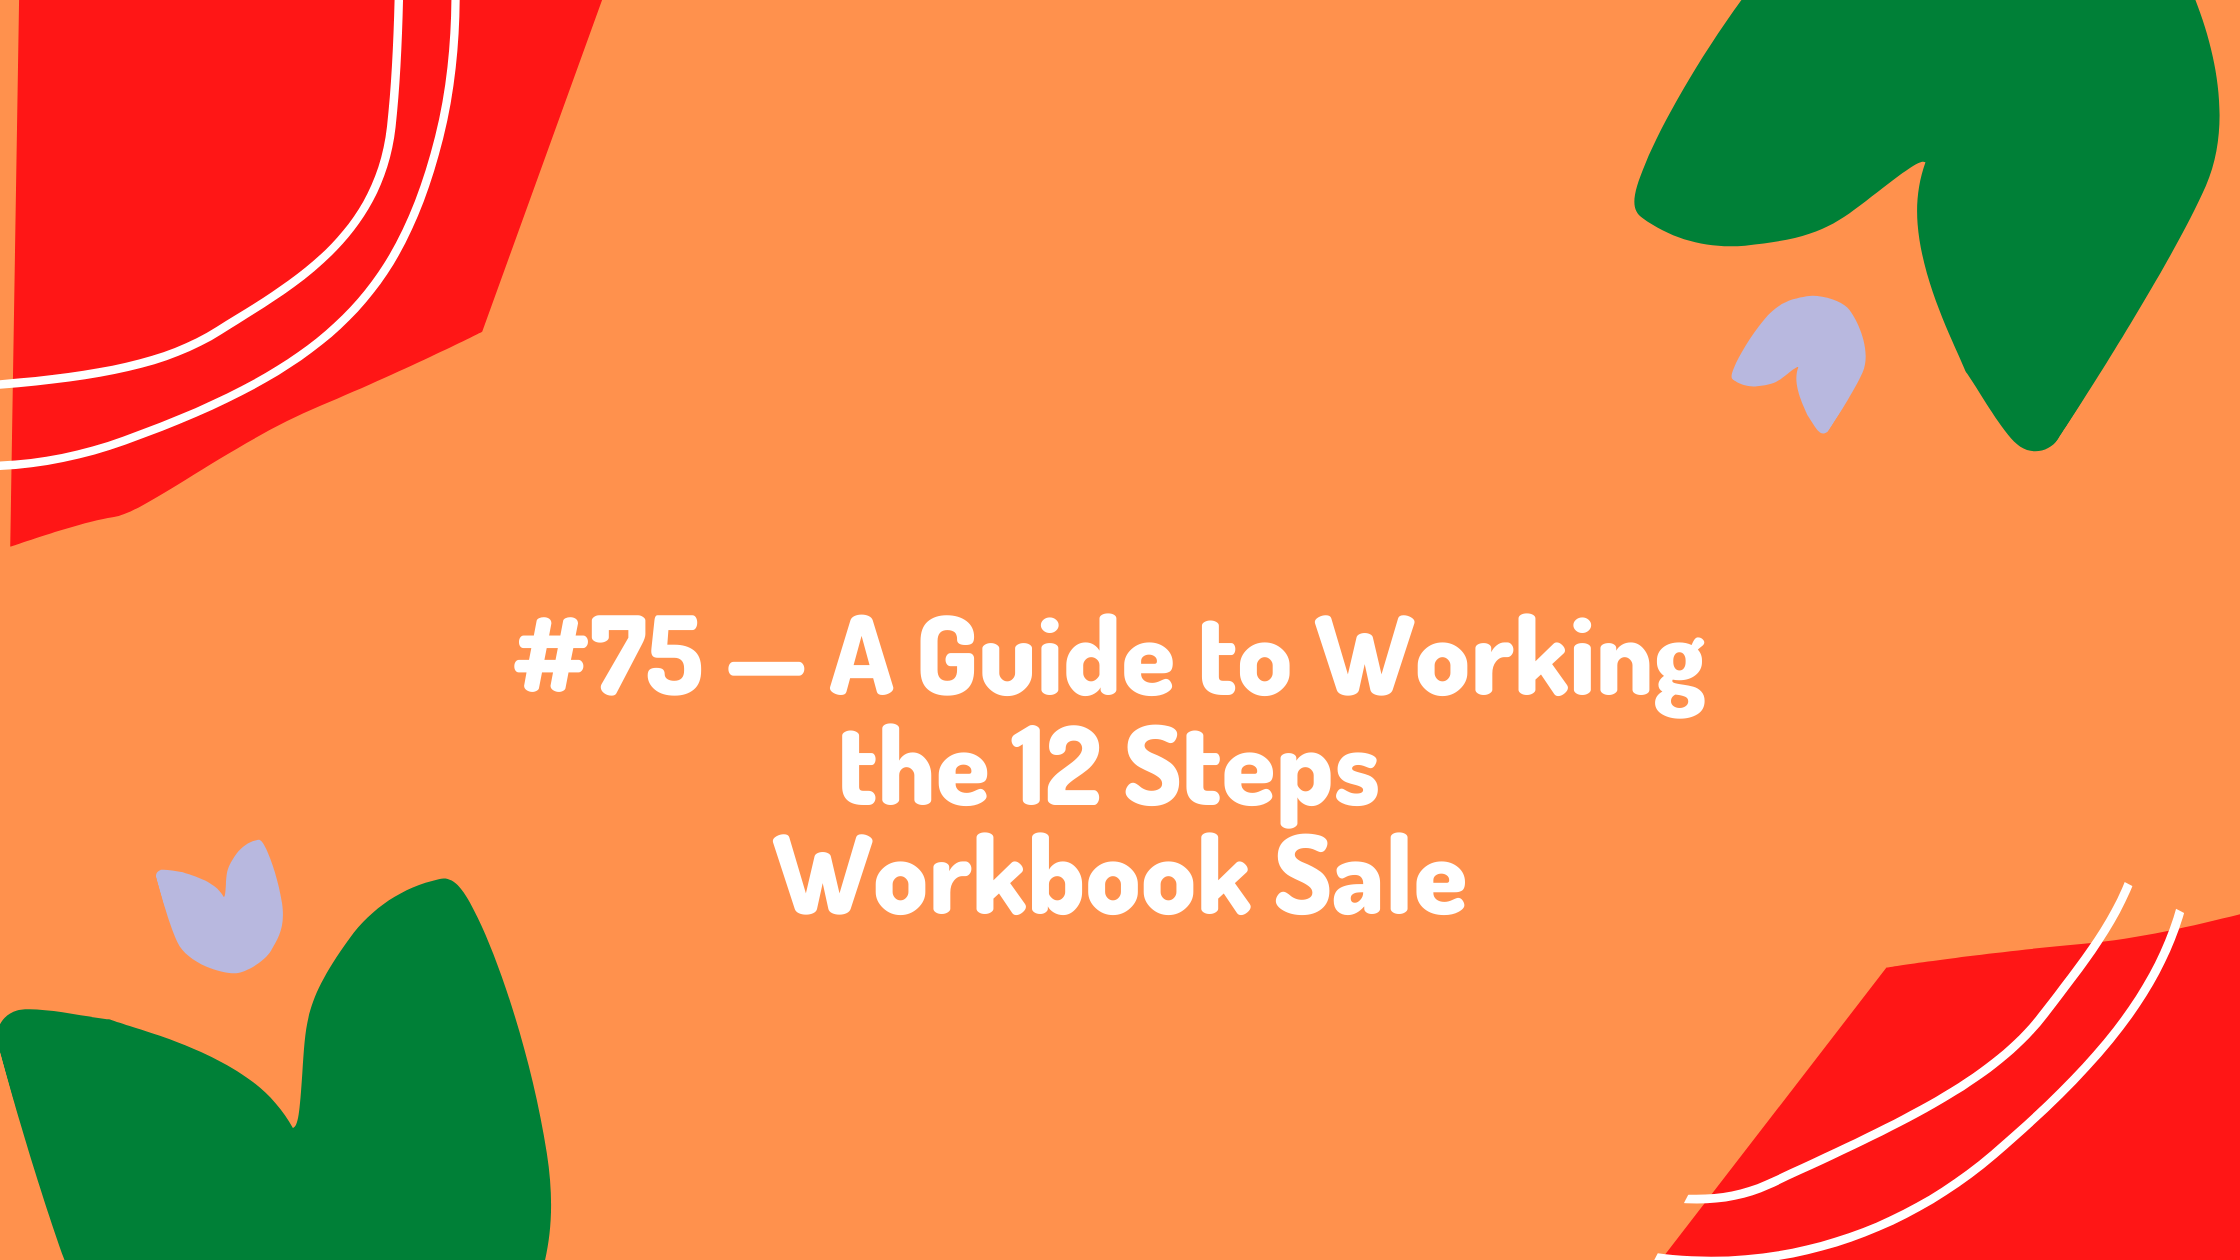 #75 - A Guide to Working the 12 Steps workbook Sale